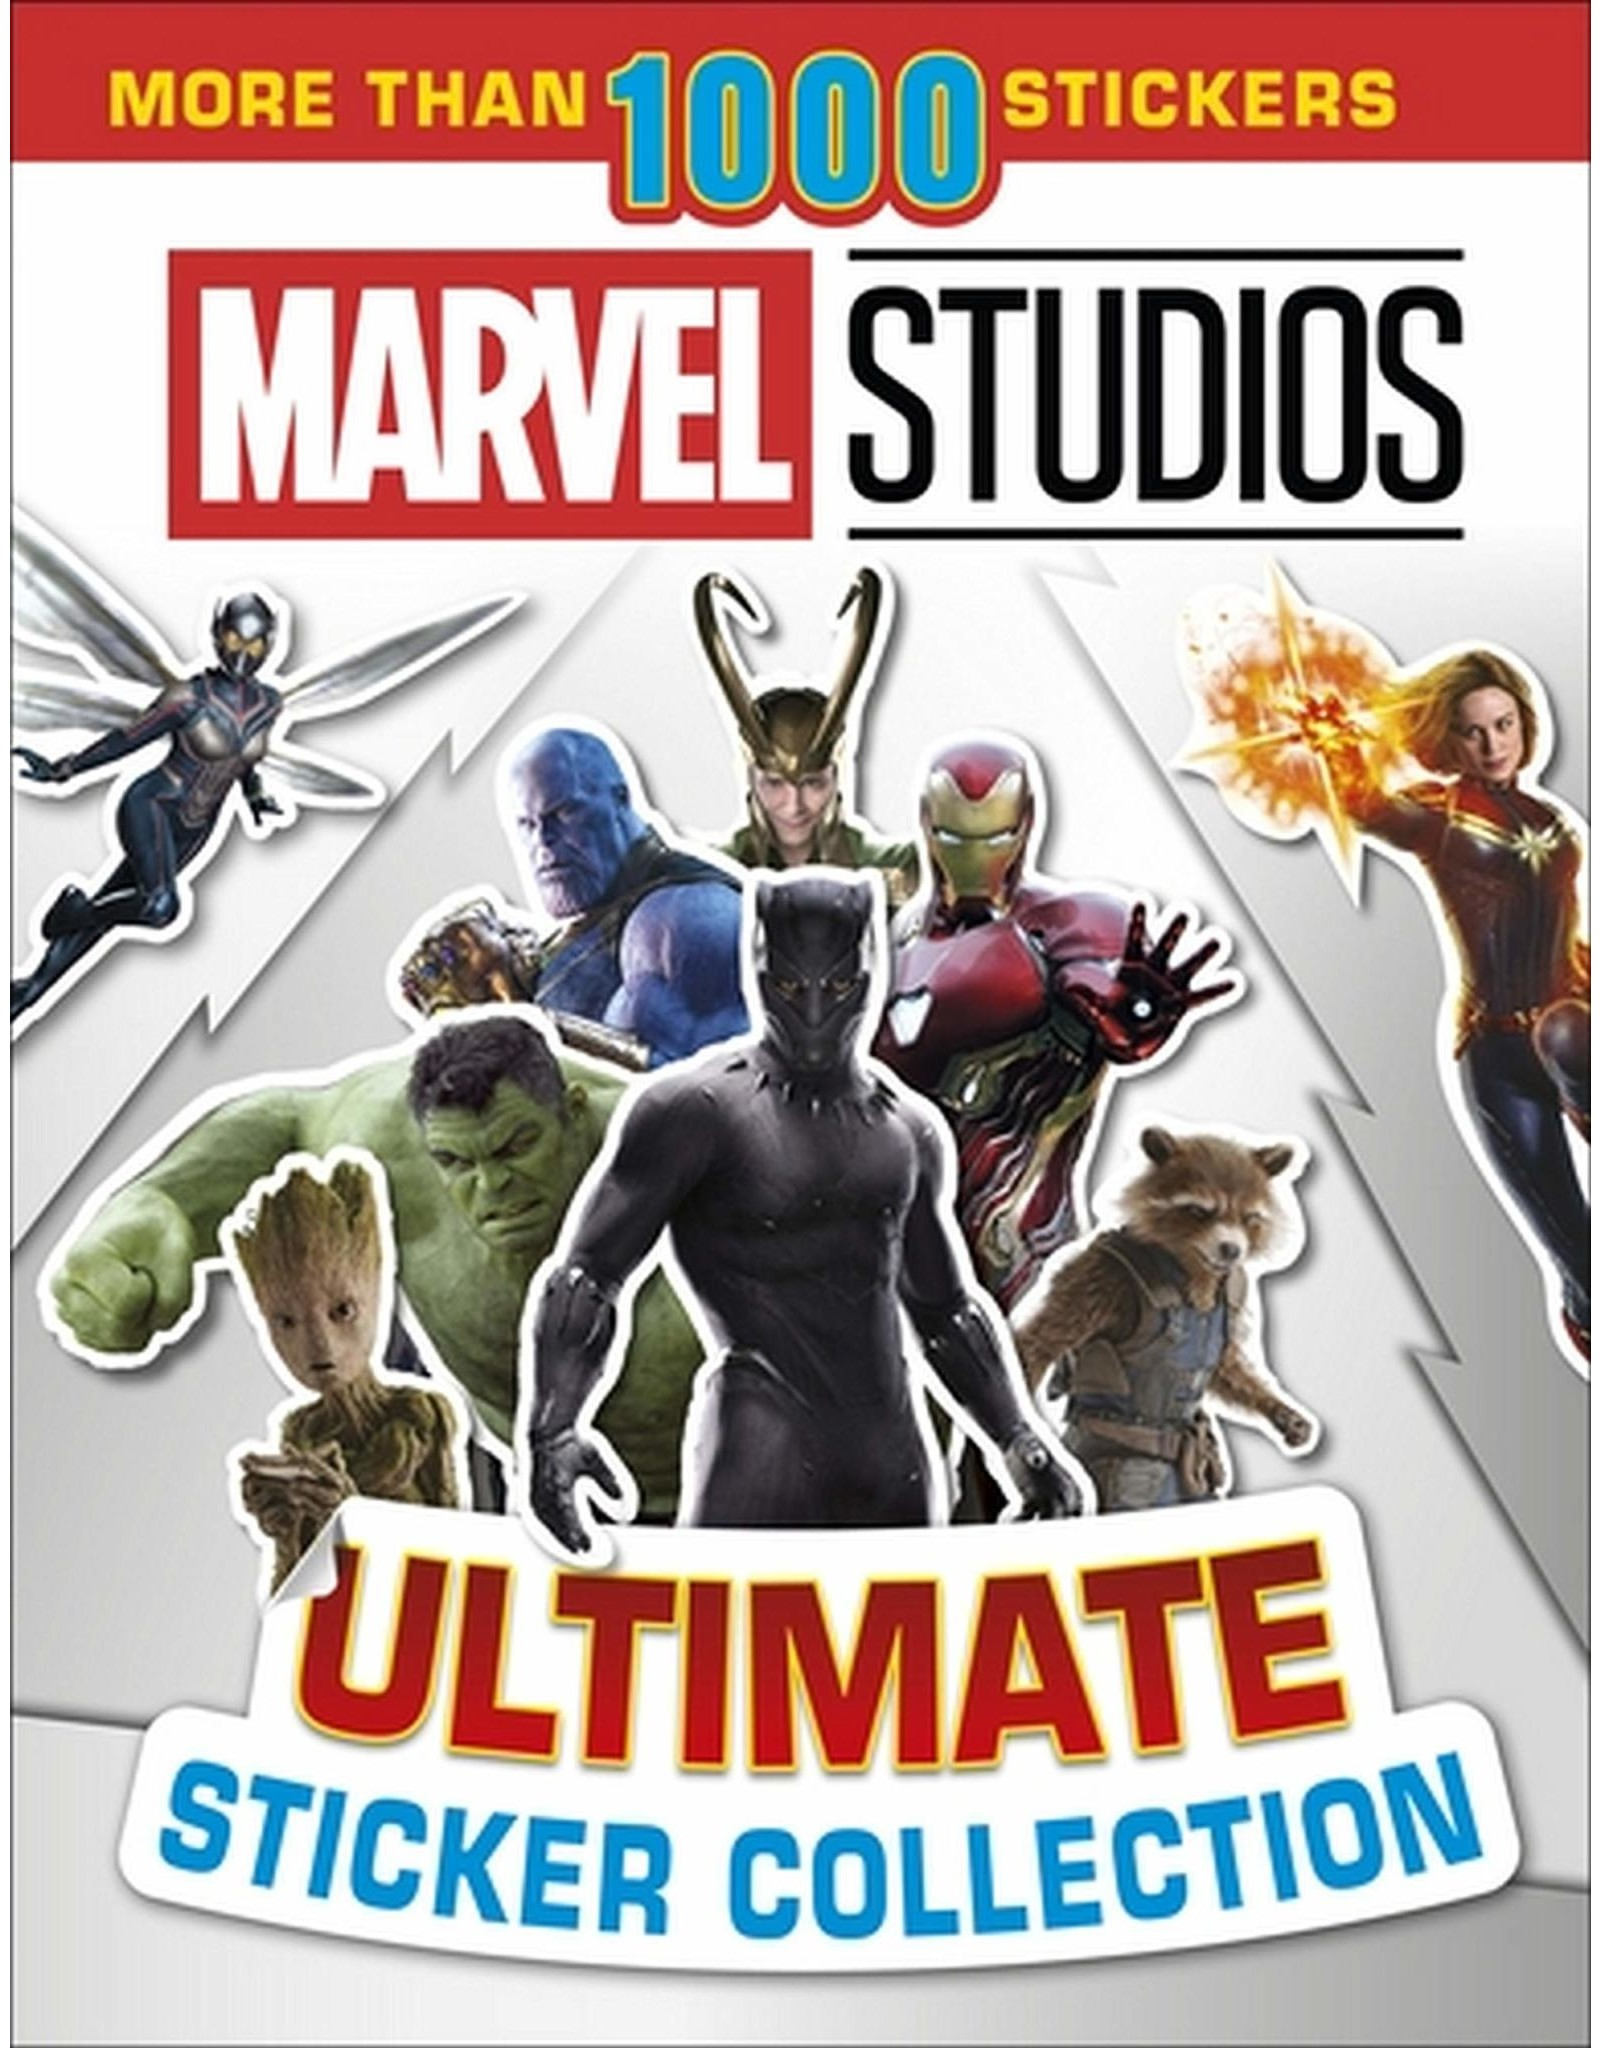 DK PUBLISHING CO ULTIMATE STICKER COLLECTION: MARVEL STUDIOS